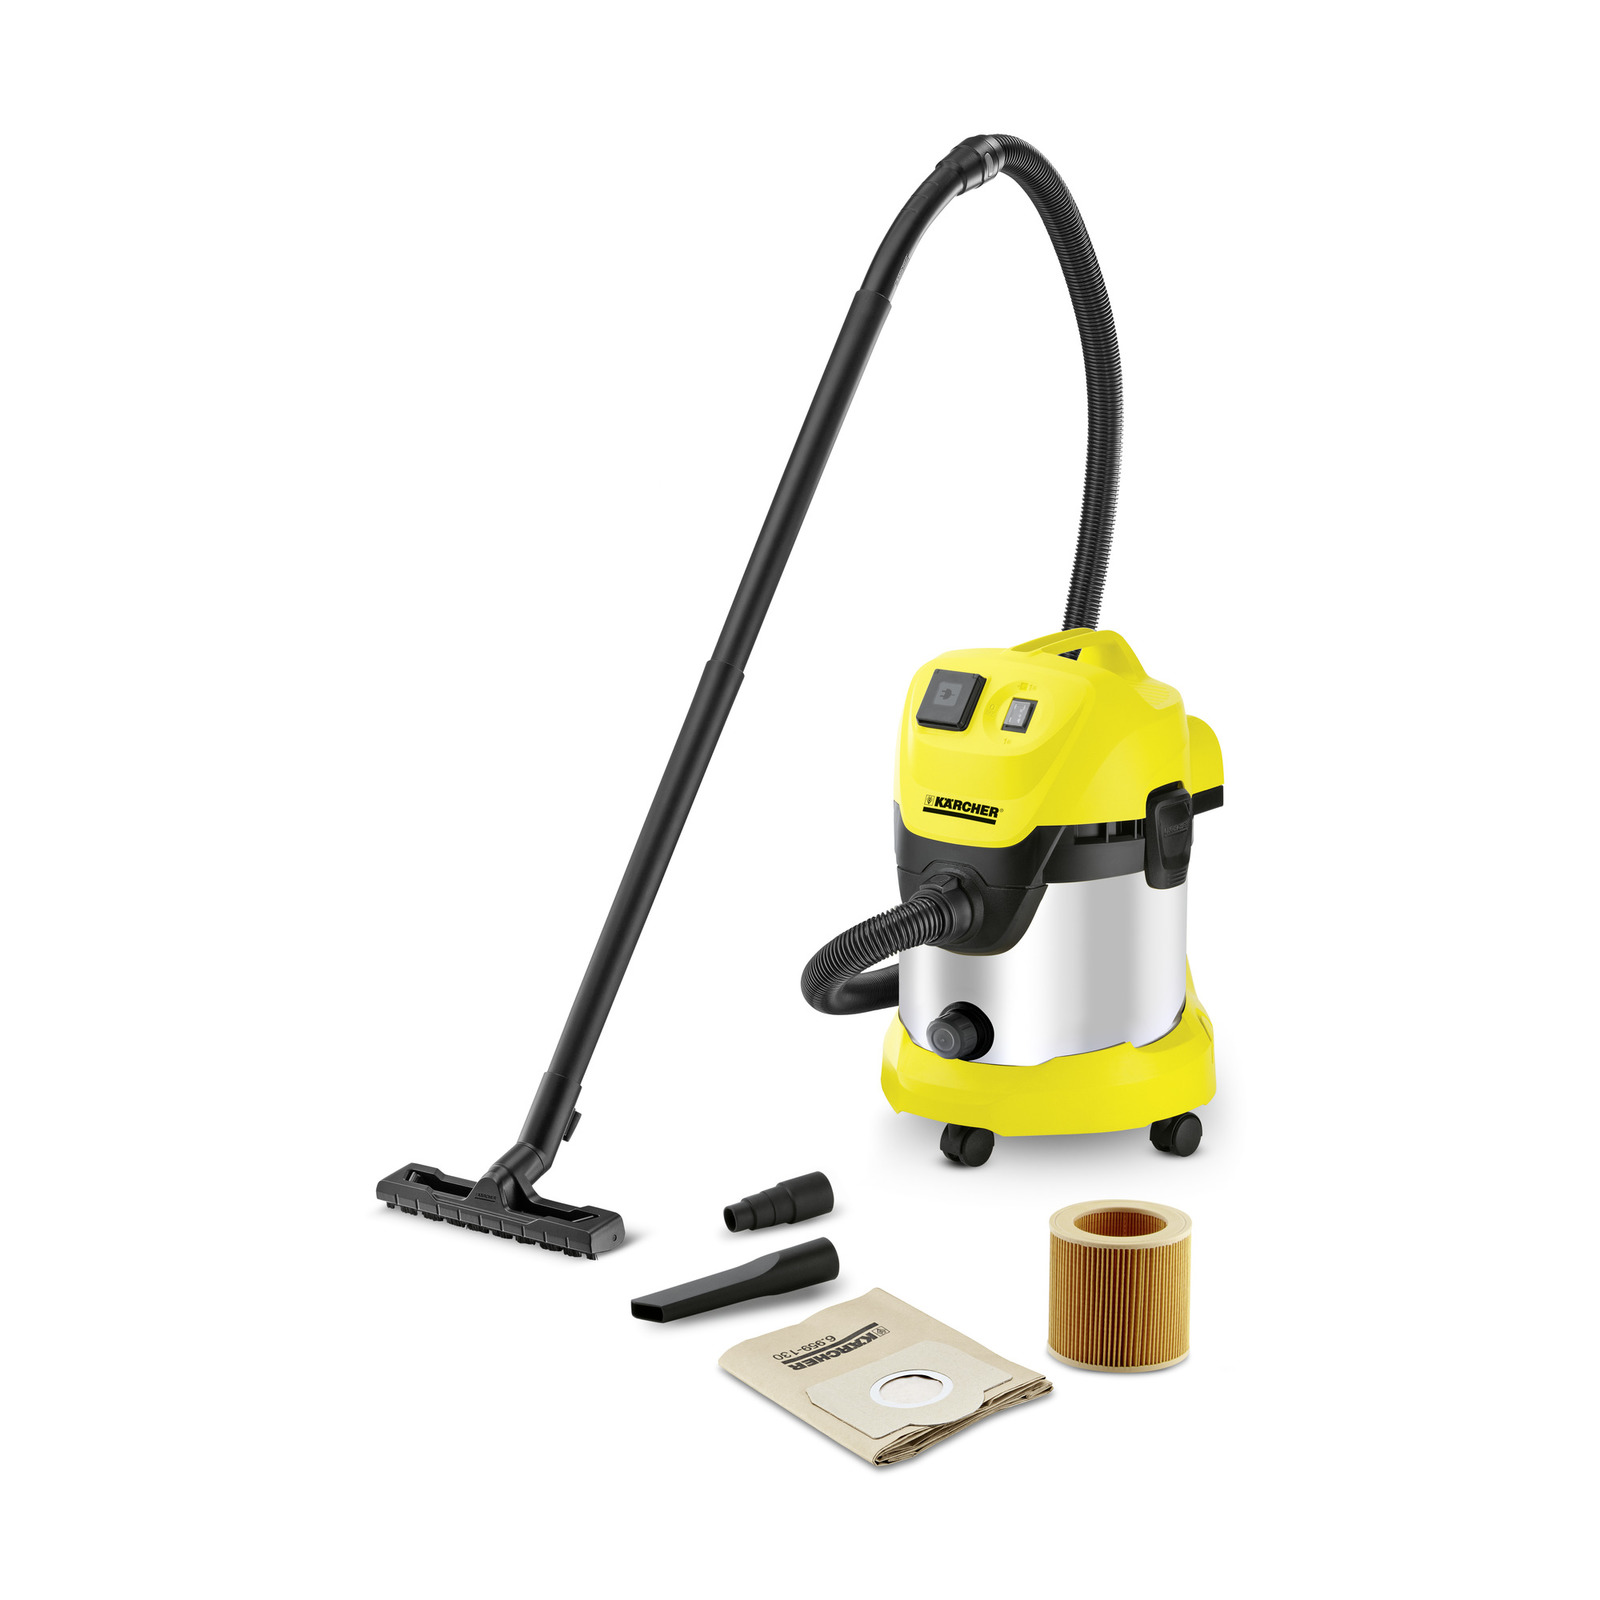 Populair Wet And Dry Vacuum Cleaner | WD 3.5 Premium | Karcher Australia DV42